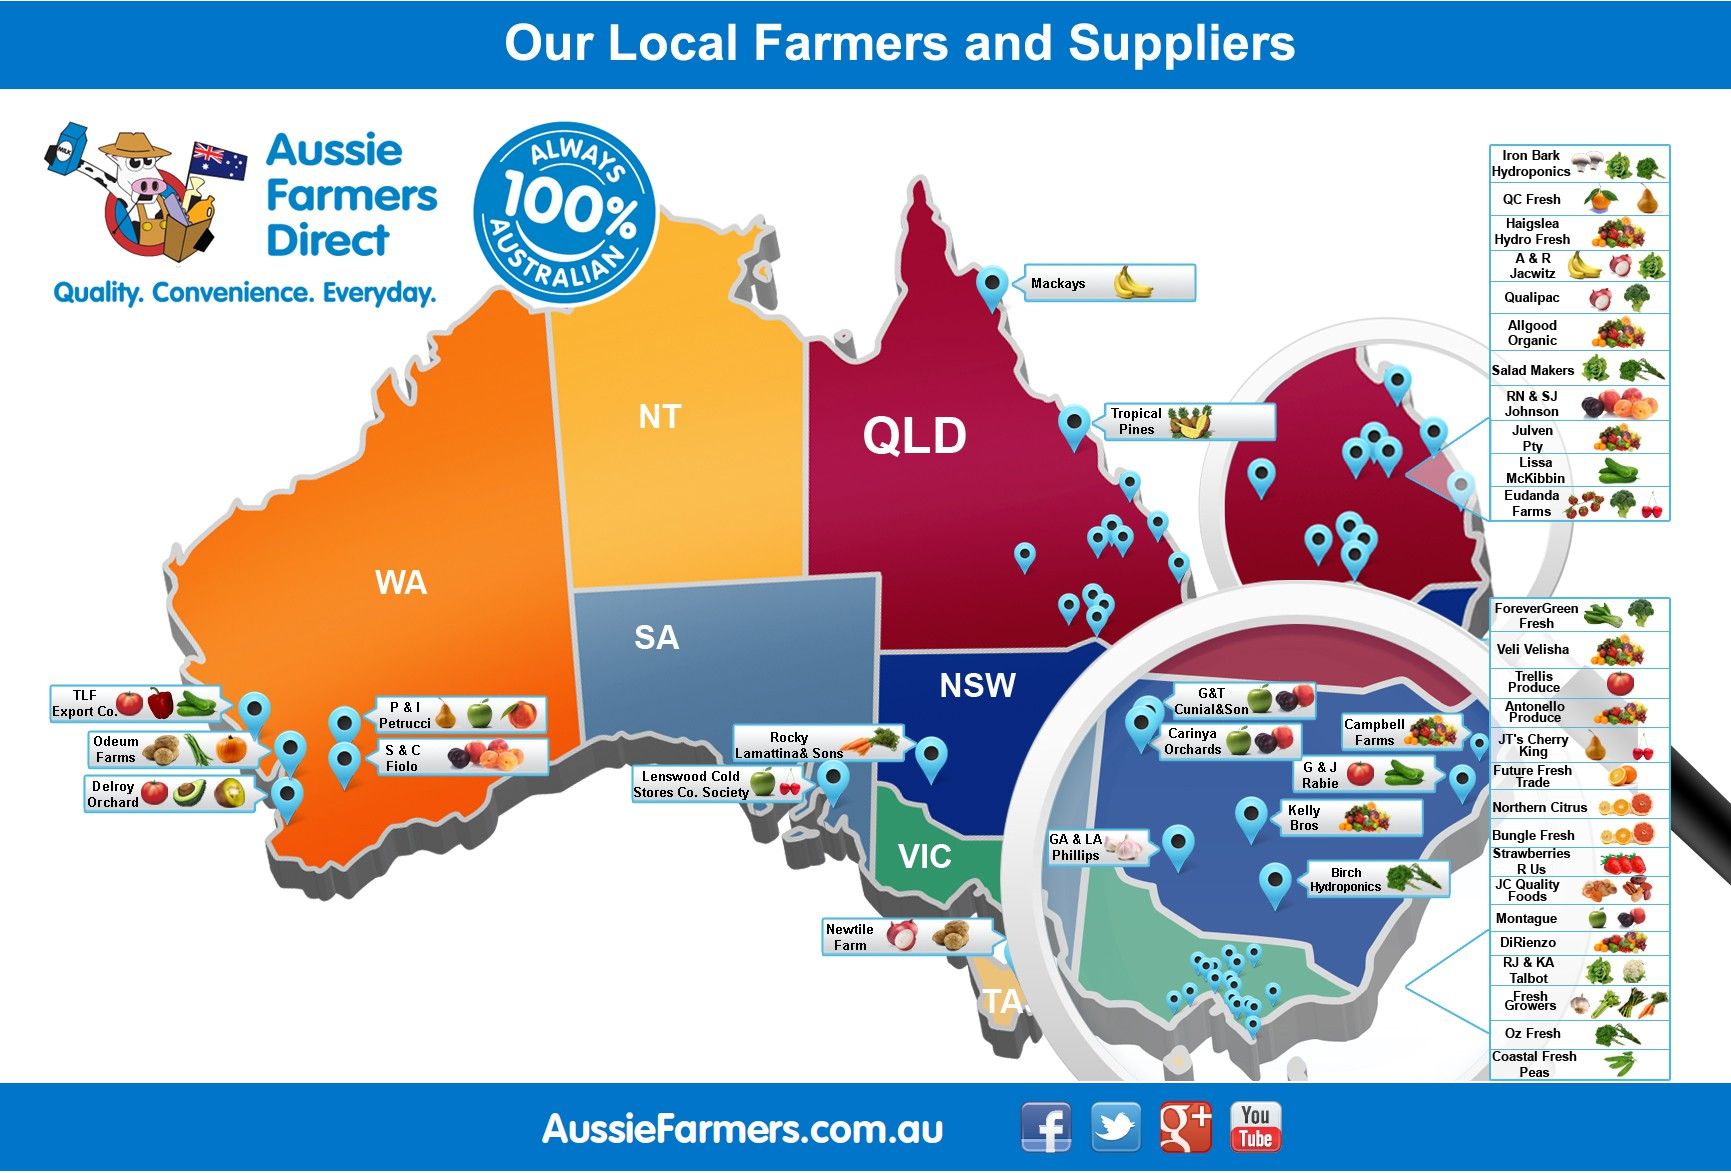 New illustration wanted for Aussie Farmers Direct